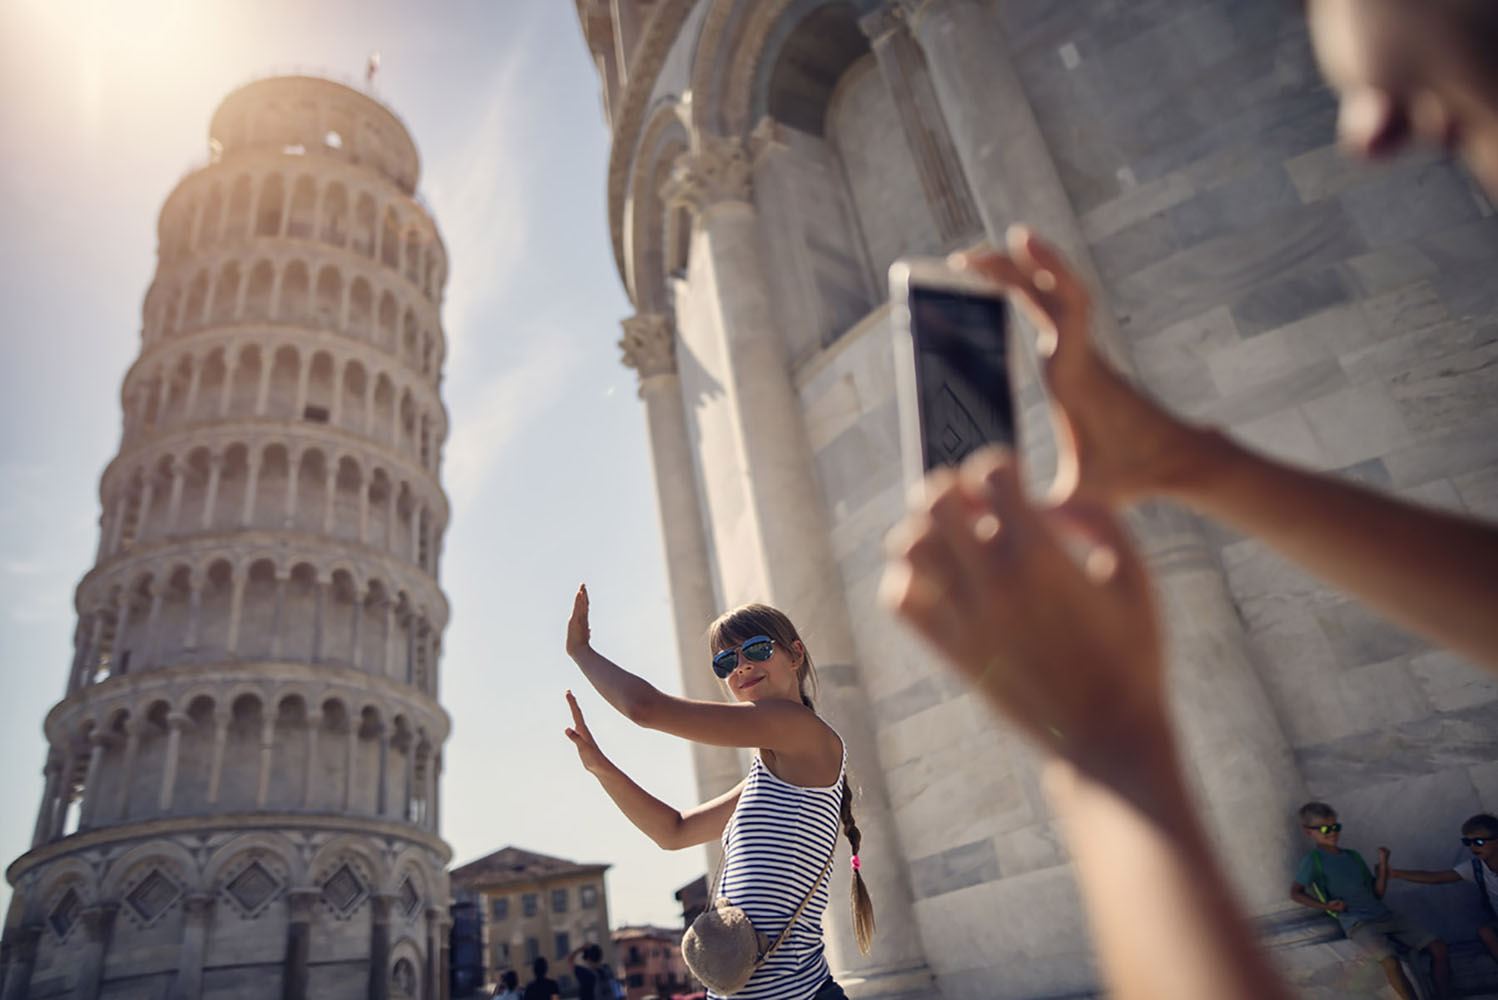 A lady recreates an iconic photo op near the Tower of Pisa